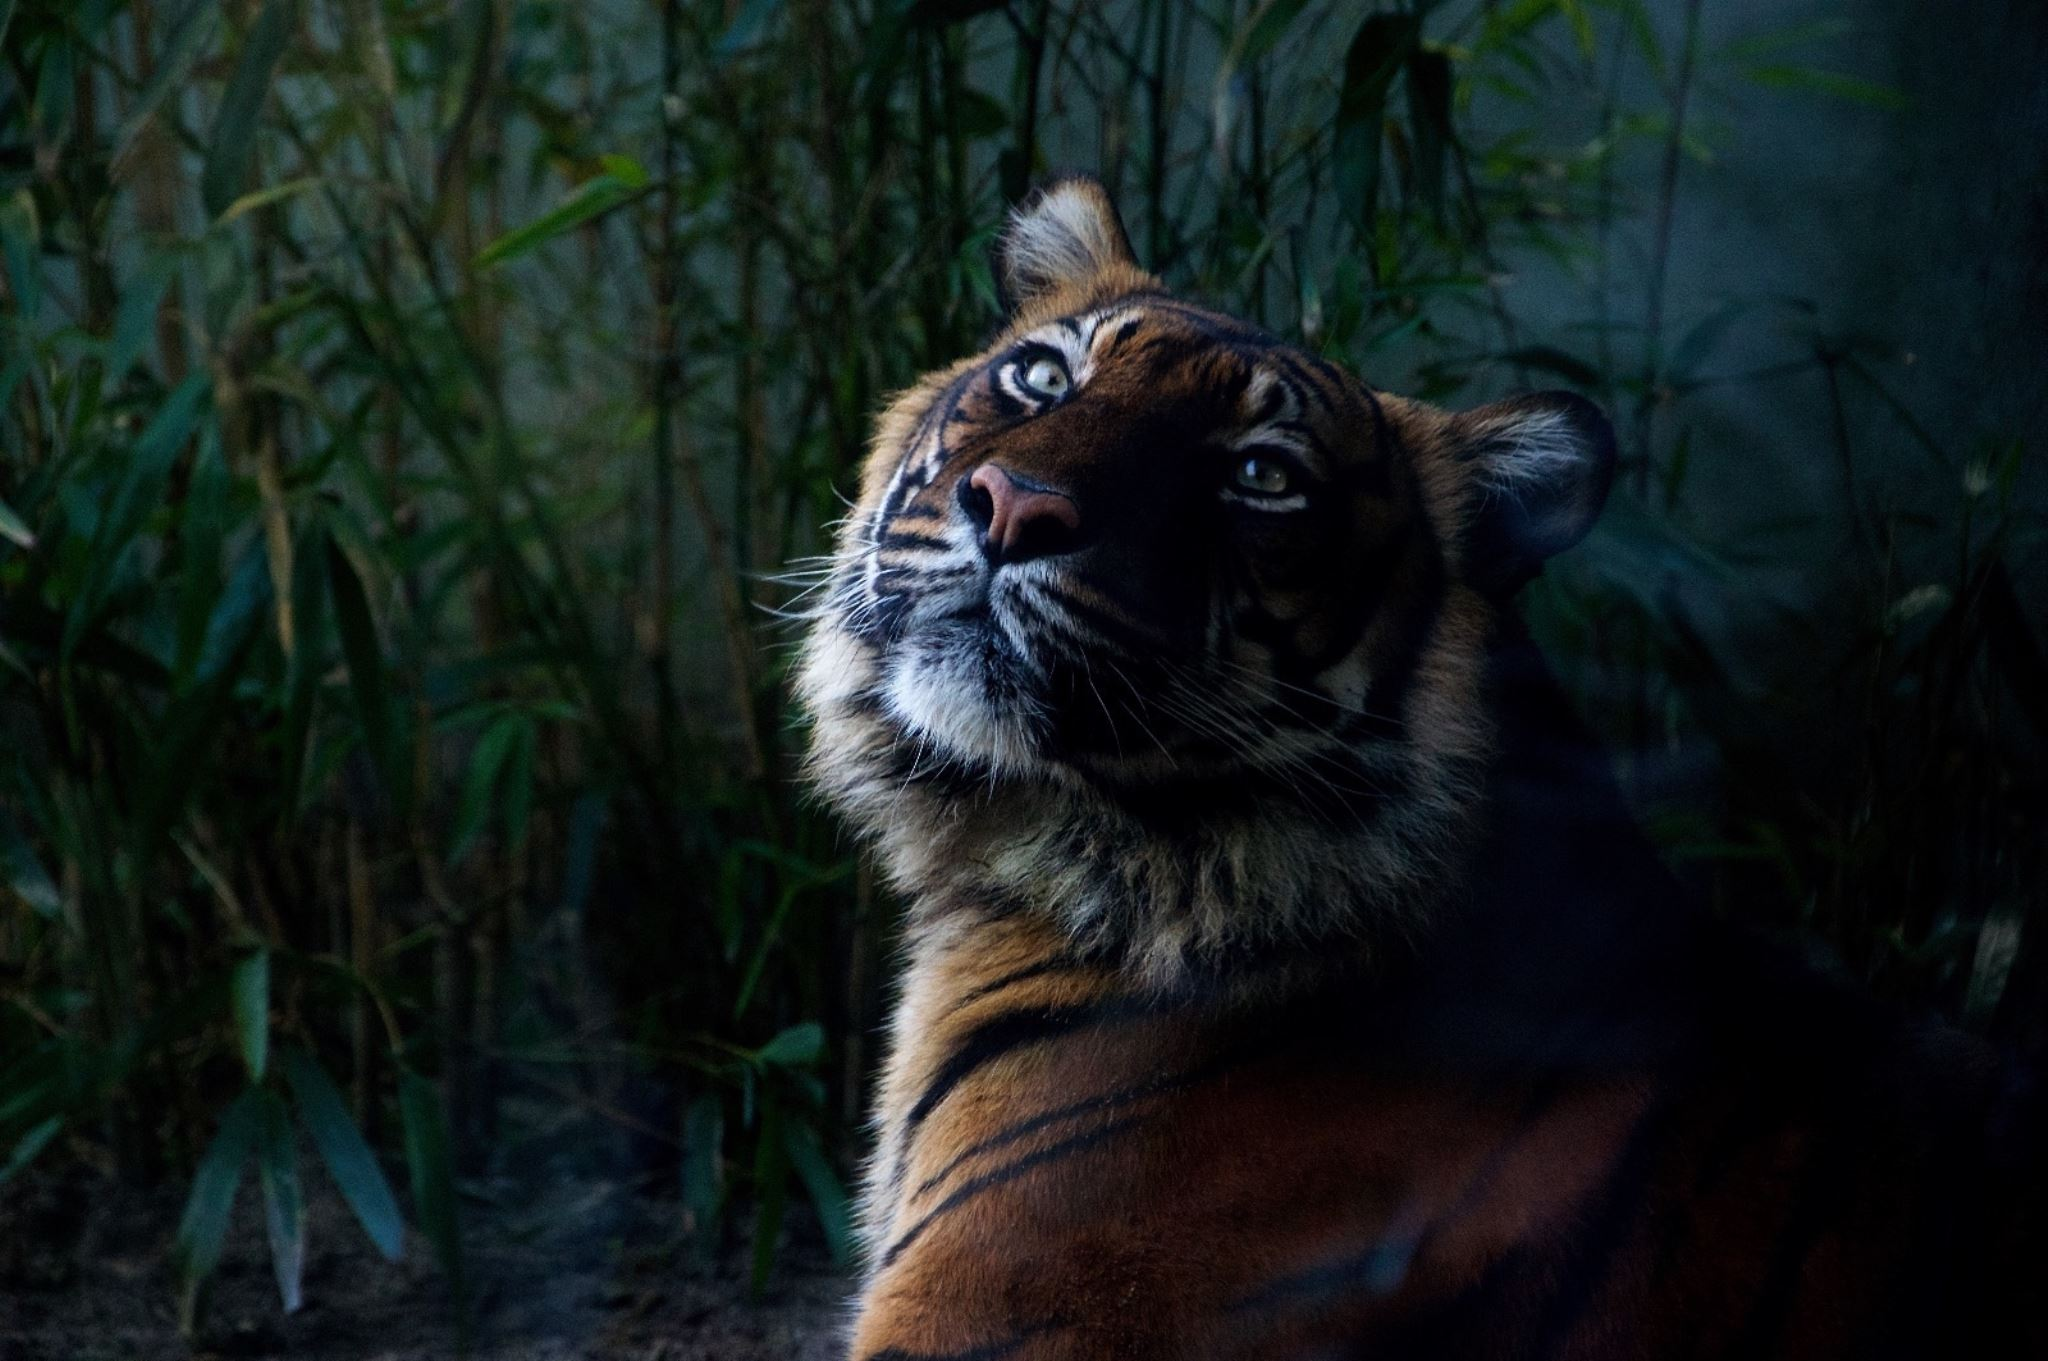 Close-up of a tiger in the forest